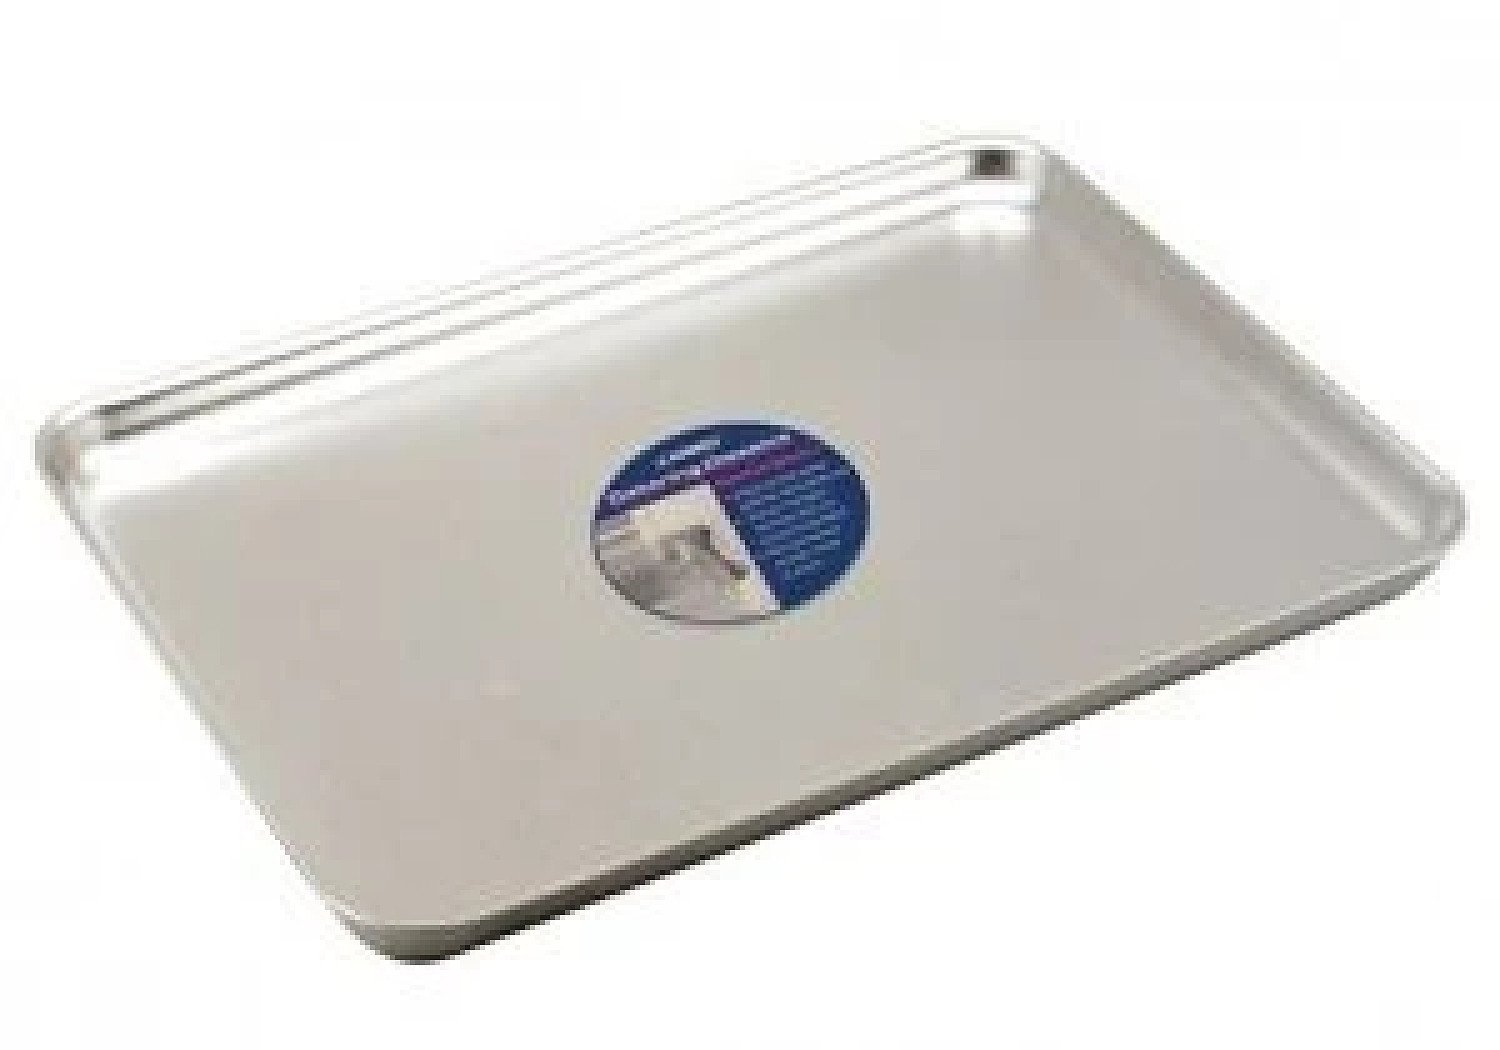 12 inch Aluminium Baking Tray For Cakes Muffins Bakeware Free Postage